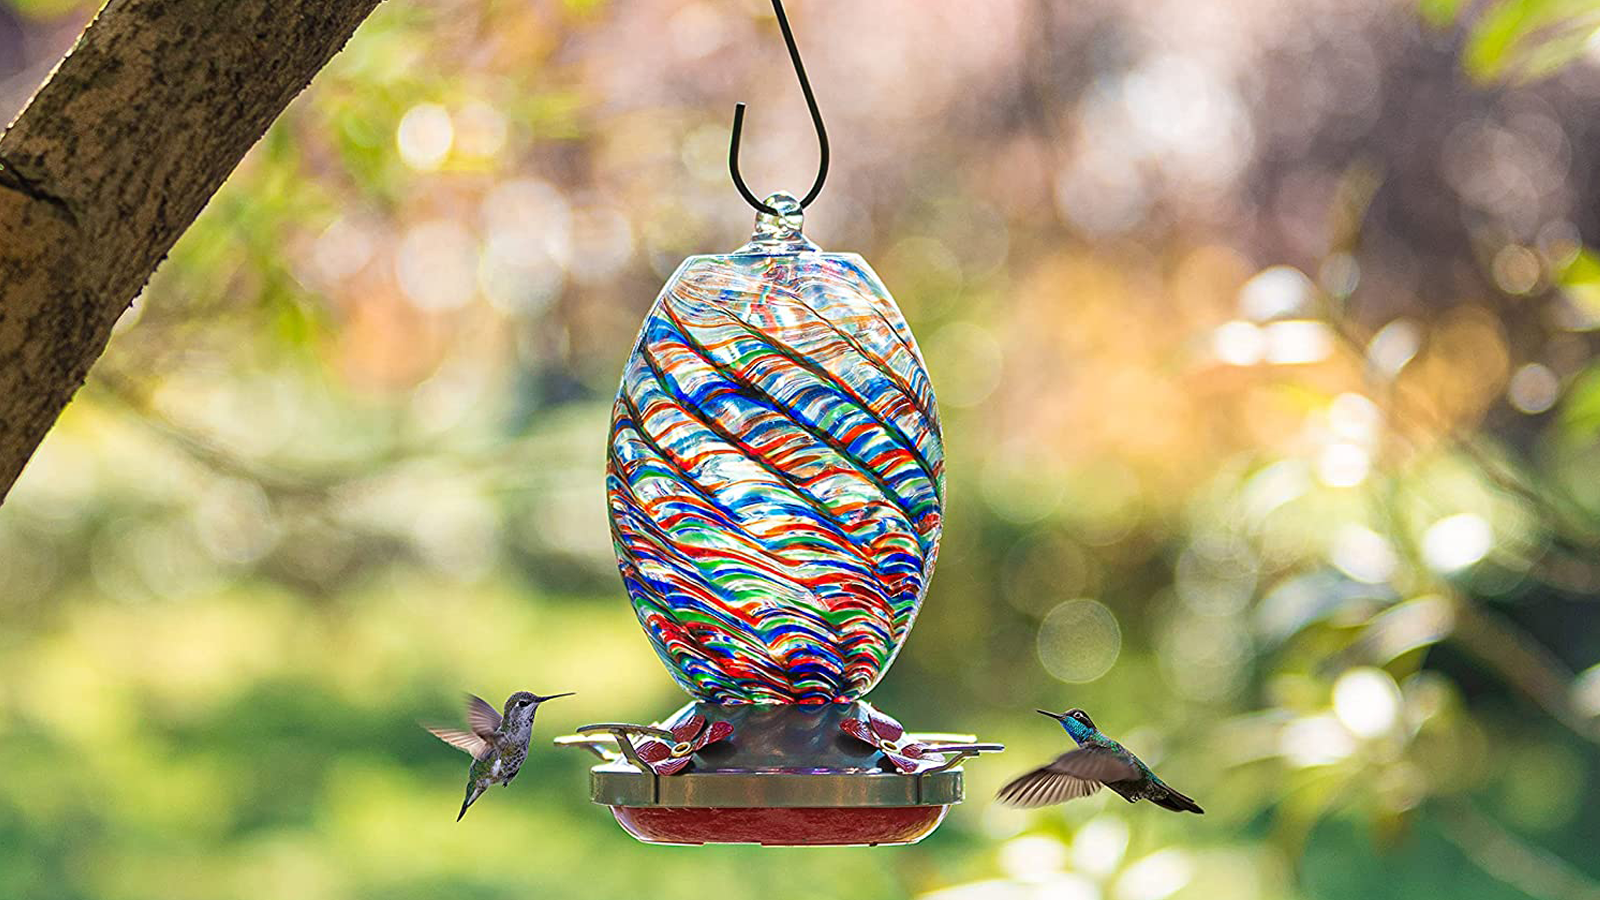 These Hand-Blown Glass Hummingbird Feeders are Just What Your Backyard Needs